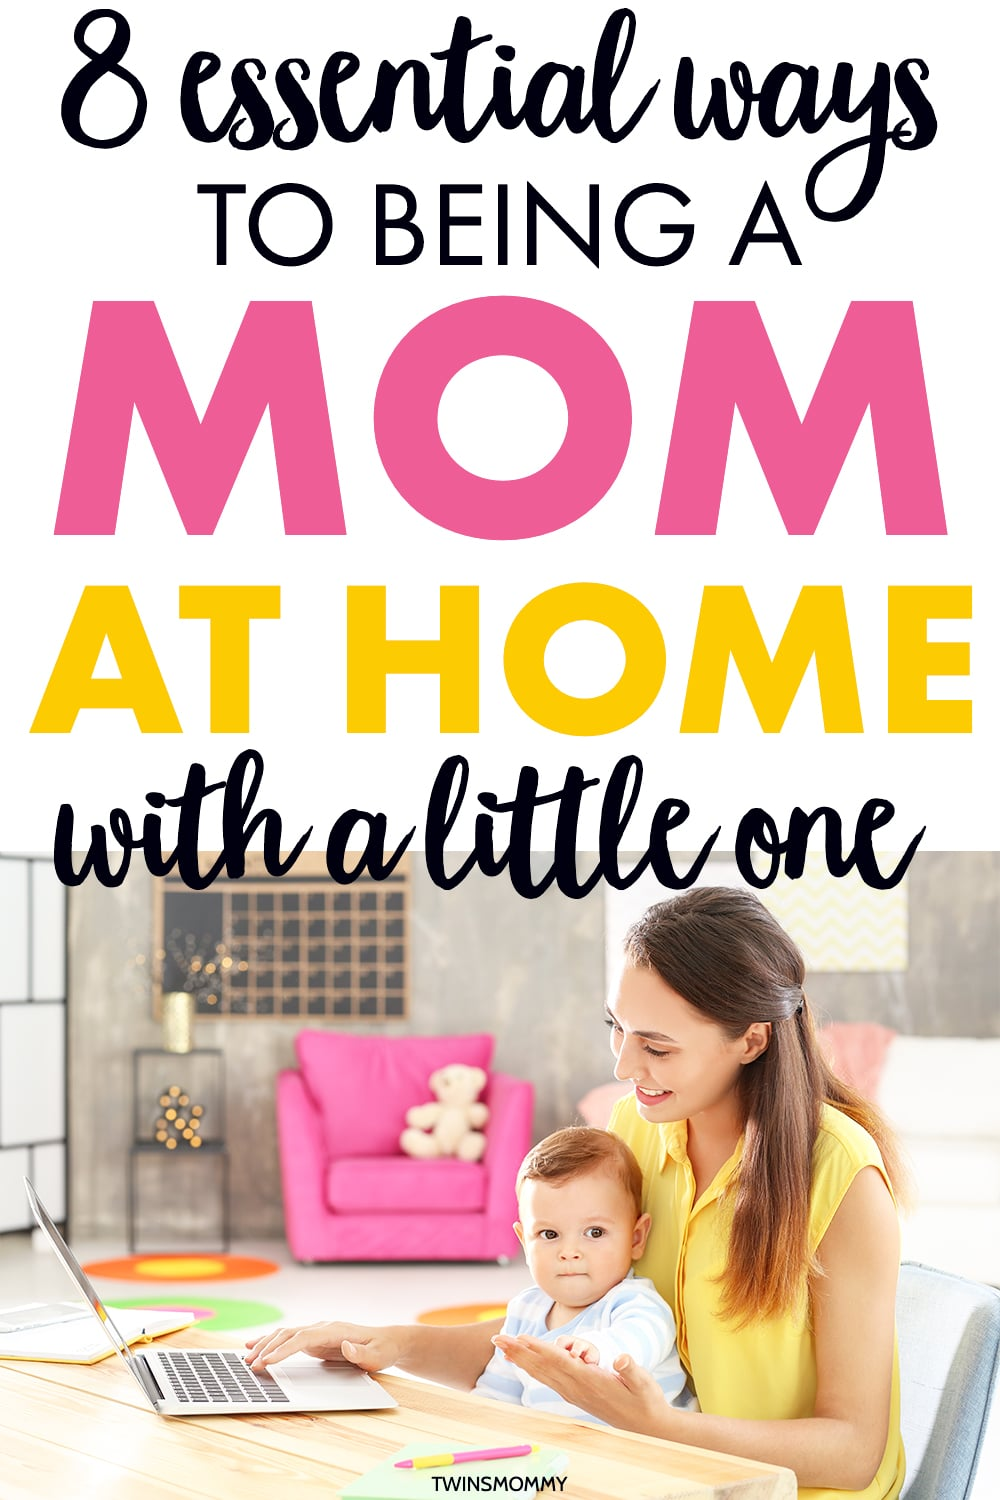 Advice for moms at home. If you're a stay-at-home mom or work from home mom, learn how to balance motherhood and career at home. #workfromhome #parents #adviceformoms